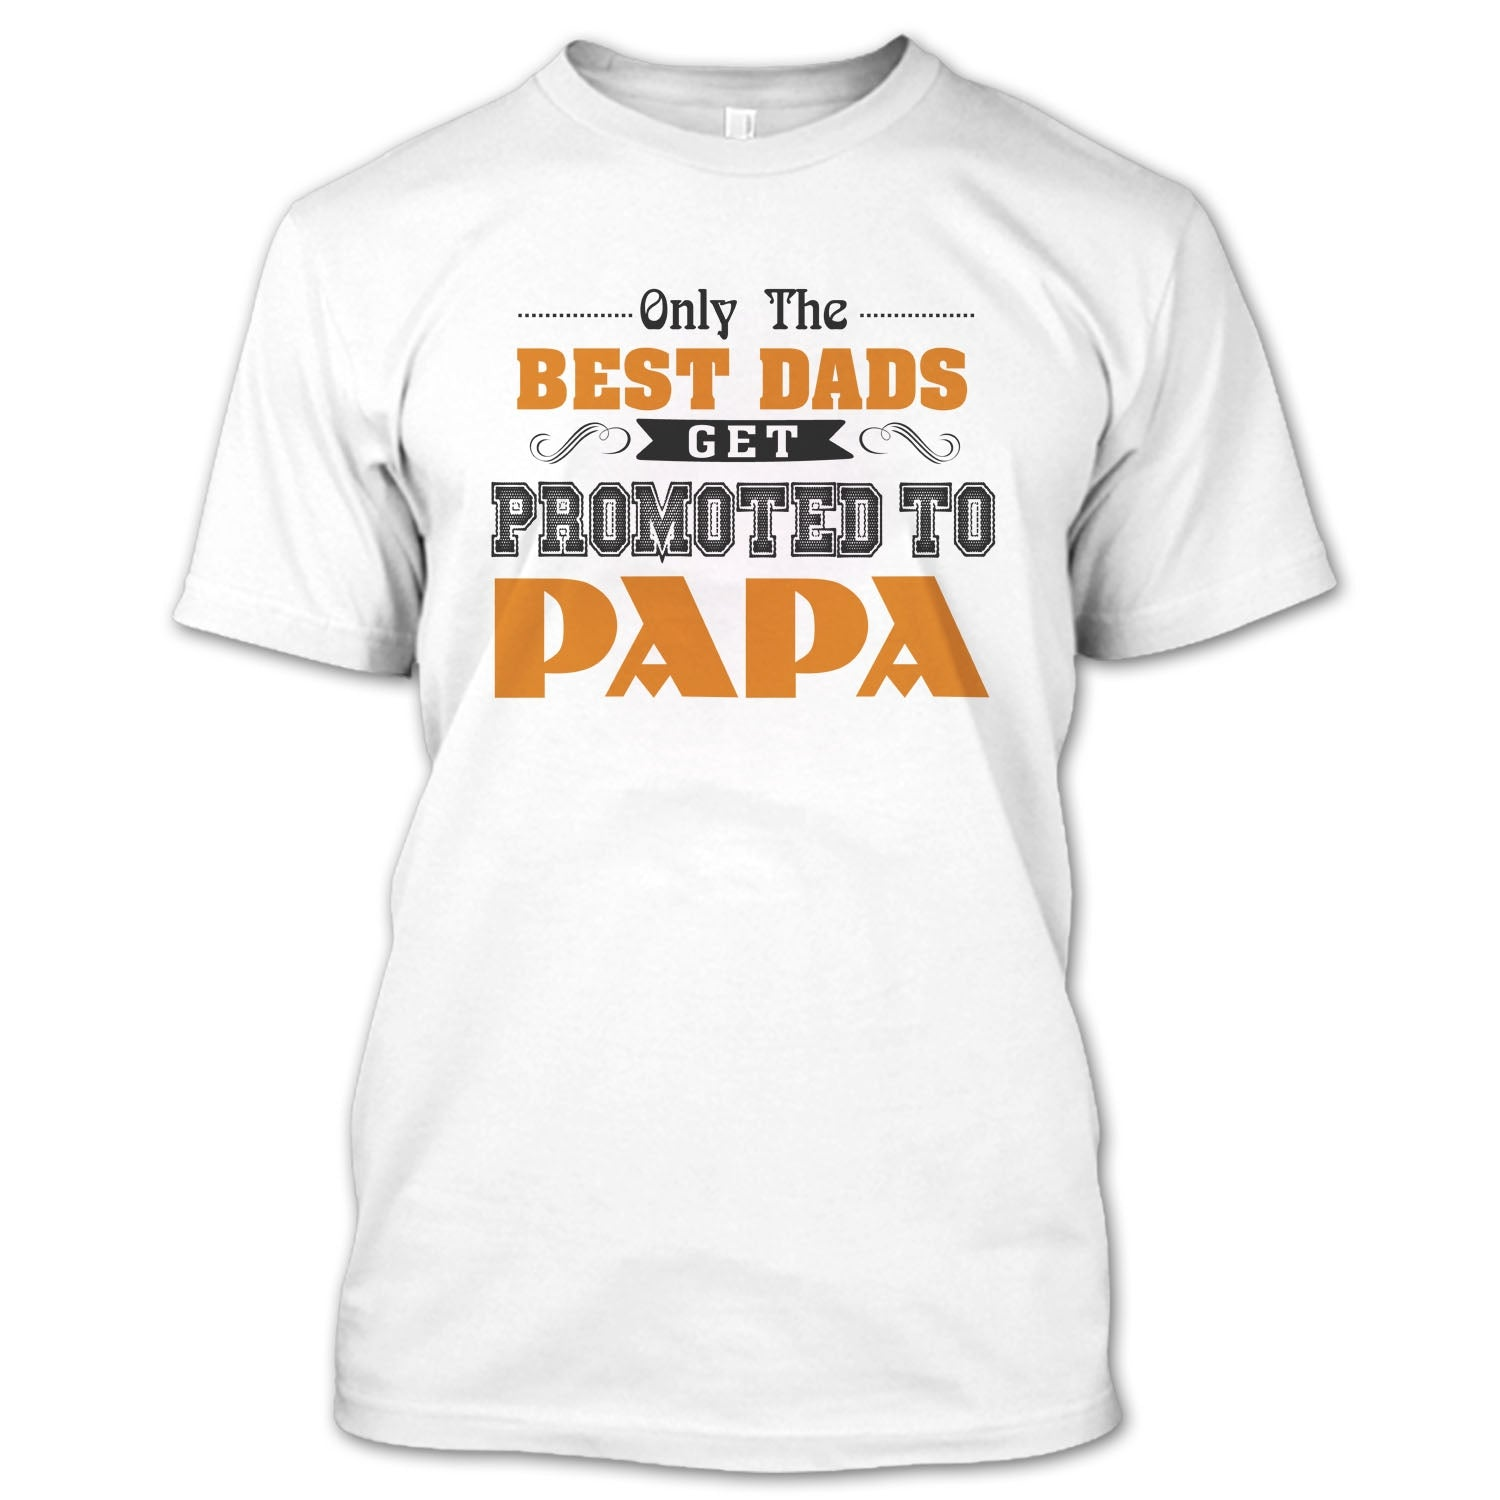 596b93d2 Funny Only The Best Dad Get Promoted To Papa T Shirt, Best Dad Shirt,  Father's Day Shirt. A black t-shirt with the shopify logo ...